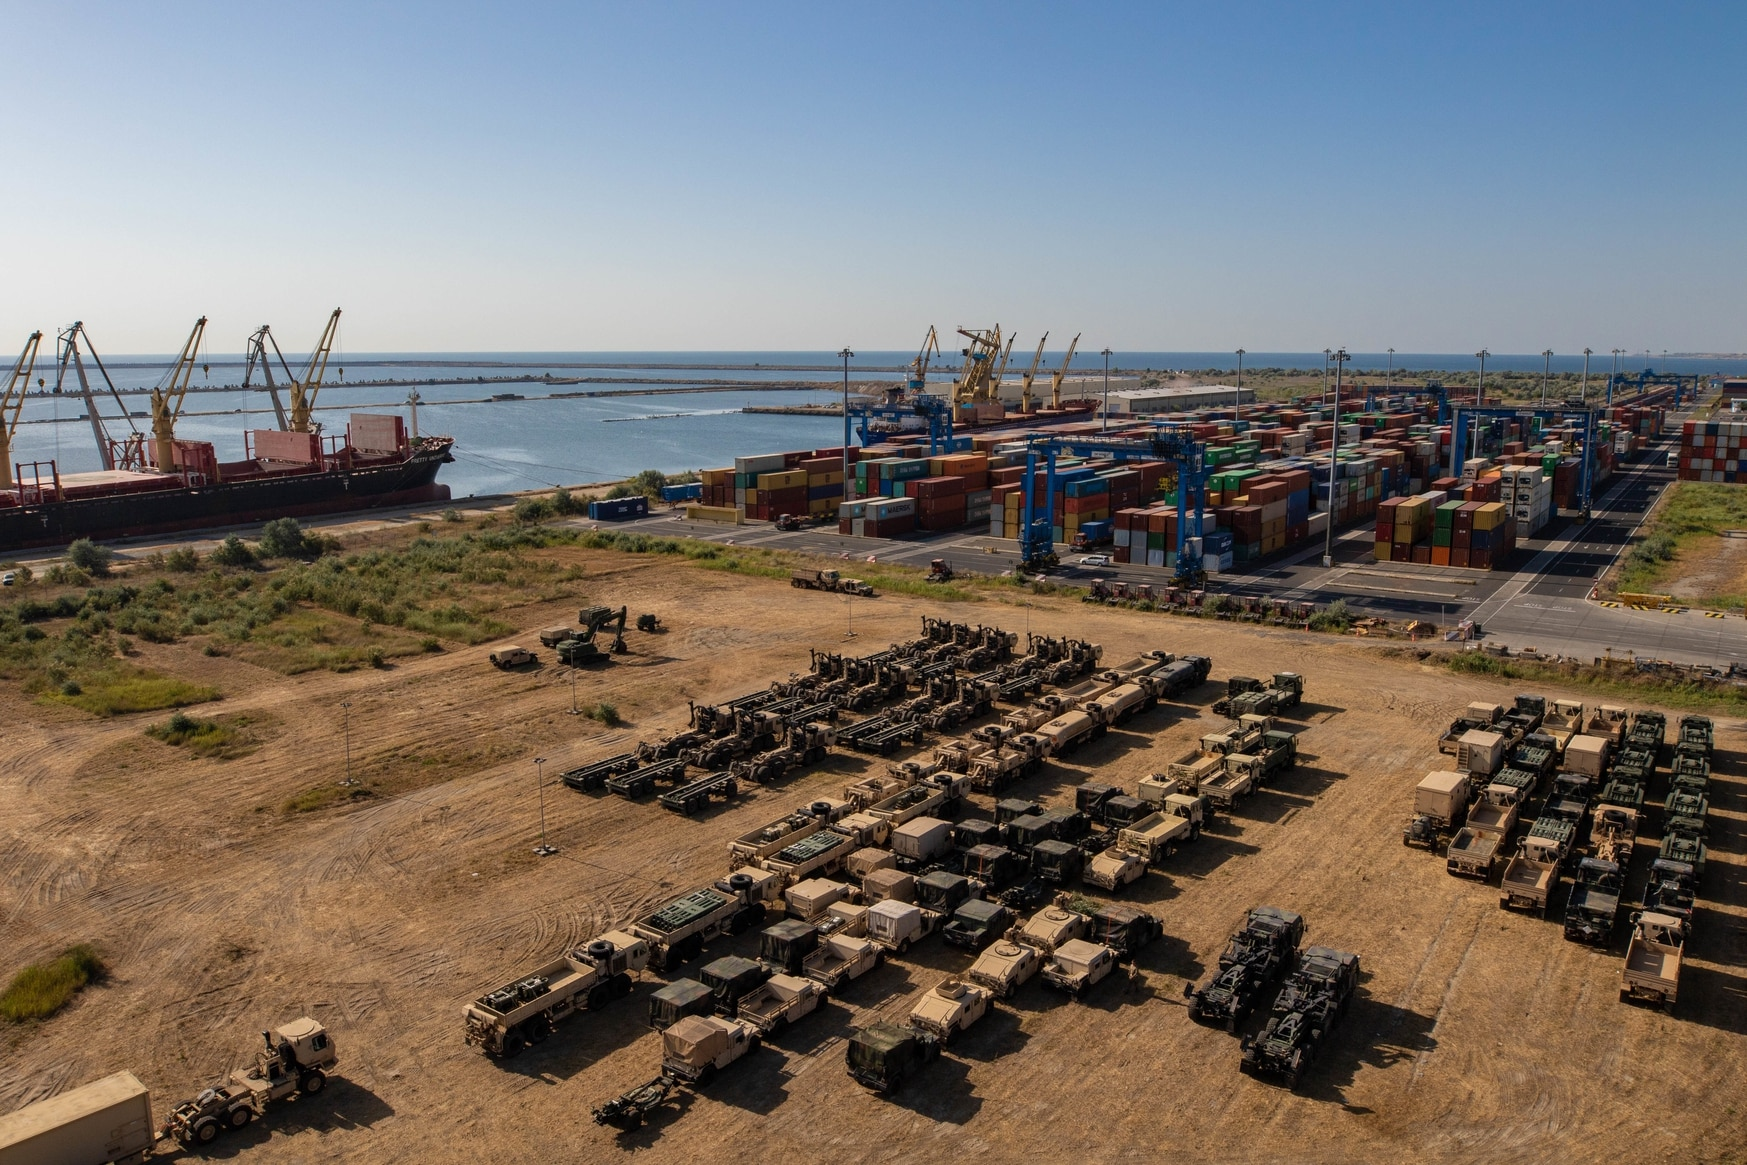 A staging area is pictured holding the overflow vehicles that must get ready for shipment back to the United States at the Port of Constanta, Romania, July 1, 2019, following training. (Pfc. Laurie Ellen Schubert/Army)